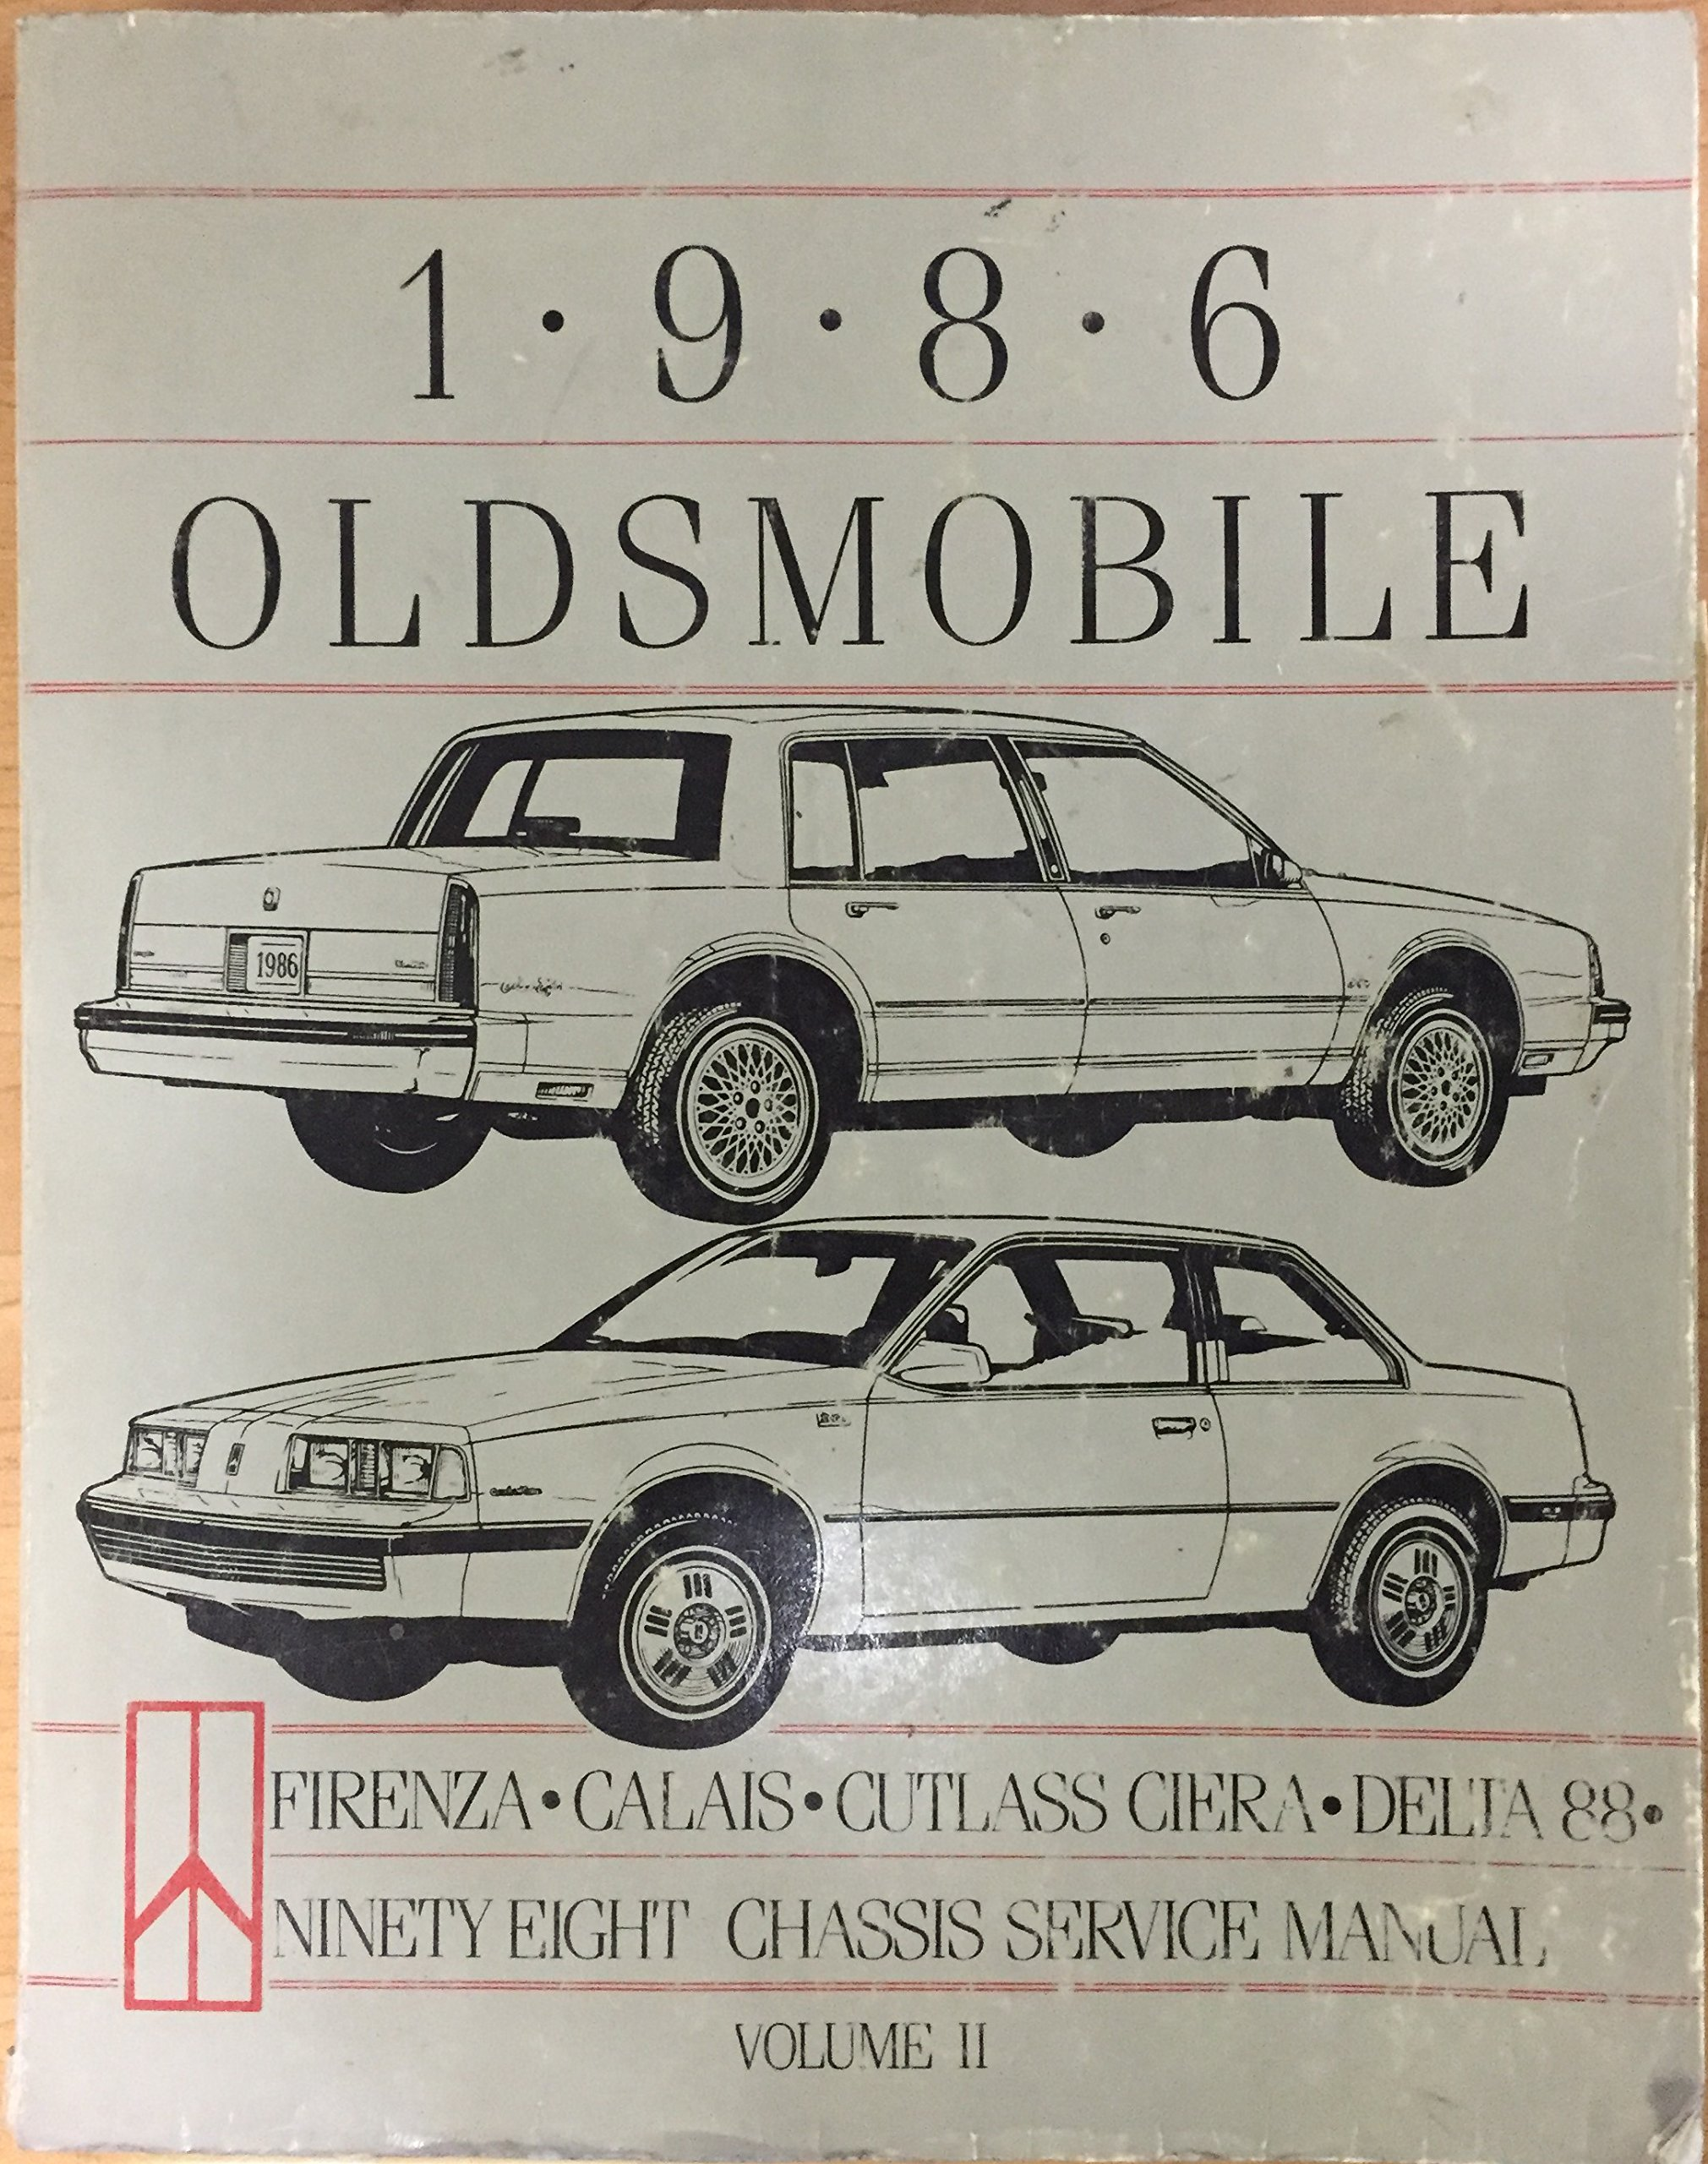 1986 OLDSMOBILE CHASSIS SERVICE MANUAL Volume 2: Firenza, Calais, Cutlass  Ciera, Delta 88: Amazon.com: Books